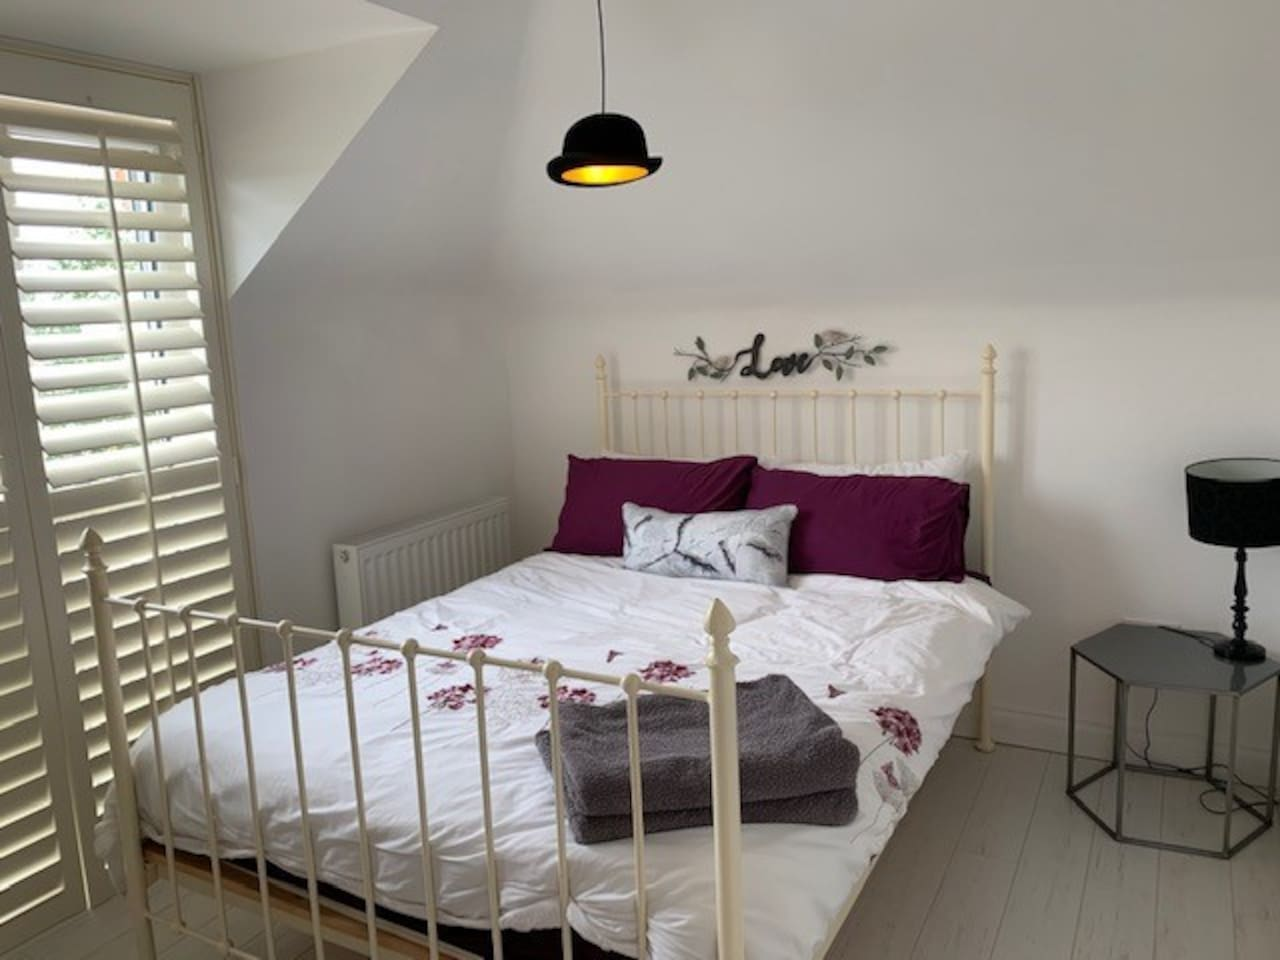 A calm and stylish bedroom